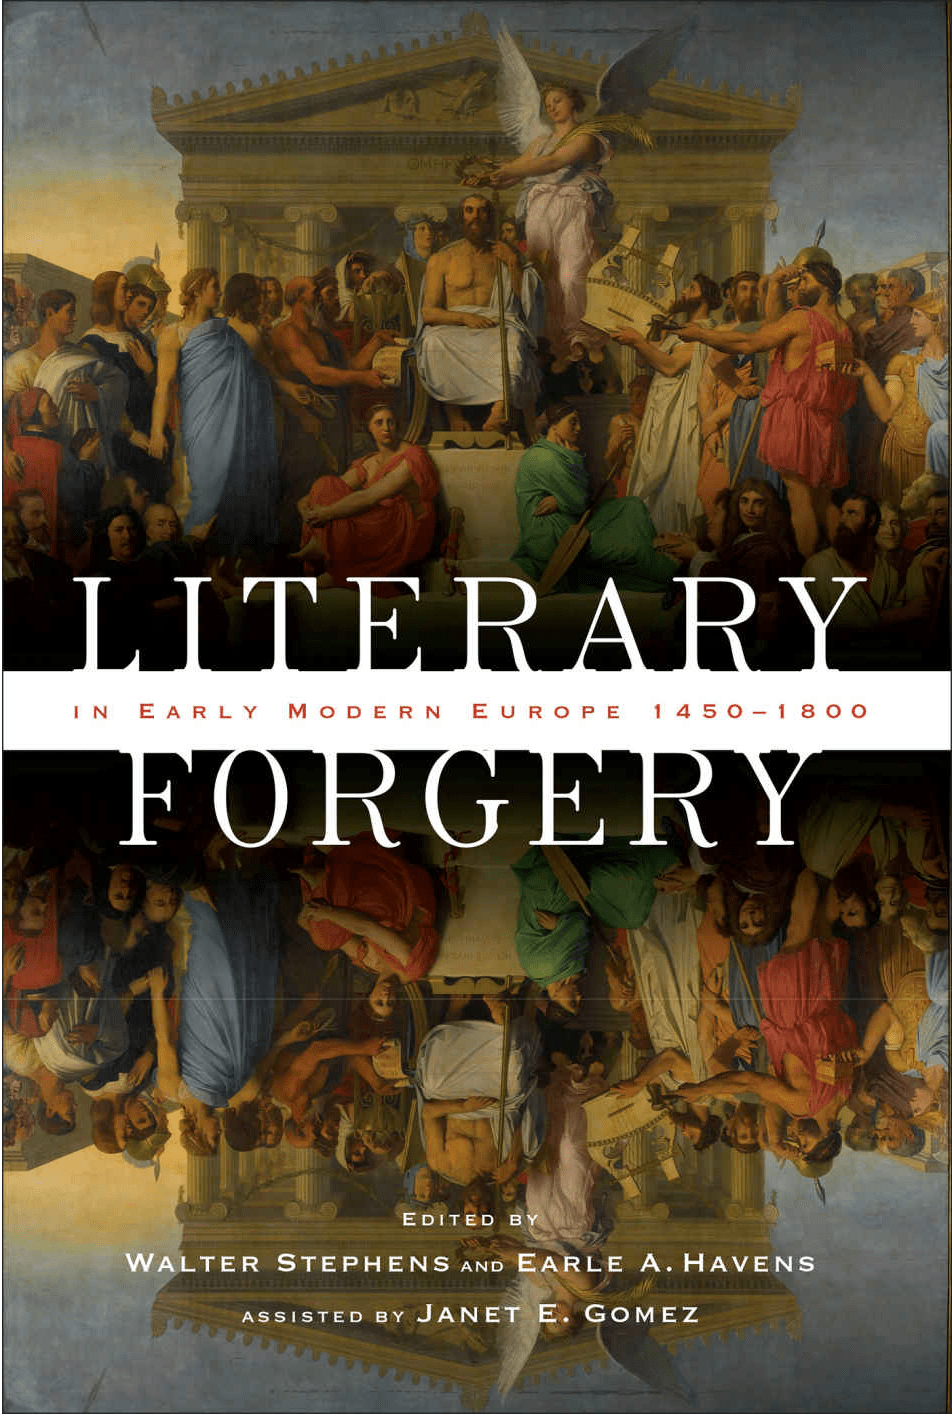 New Book on Literary Forgery